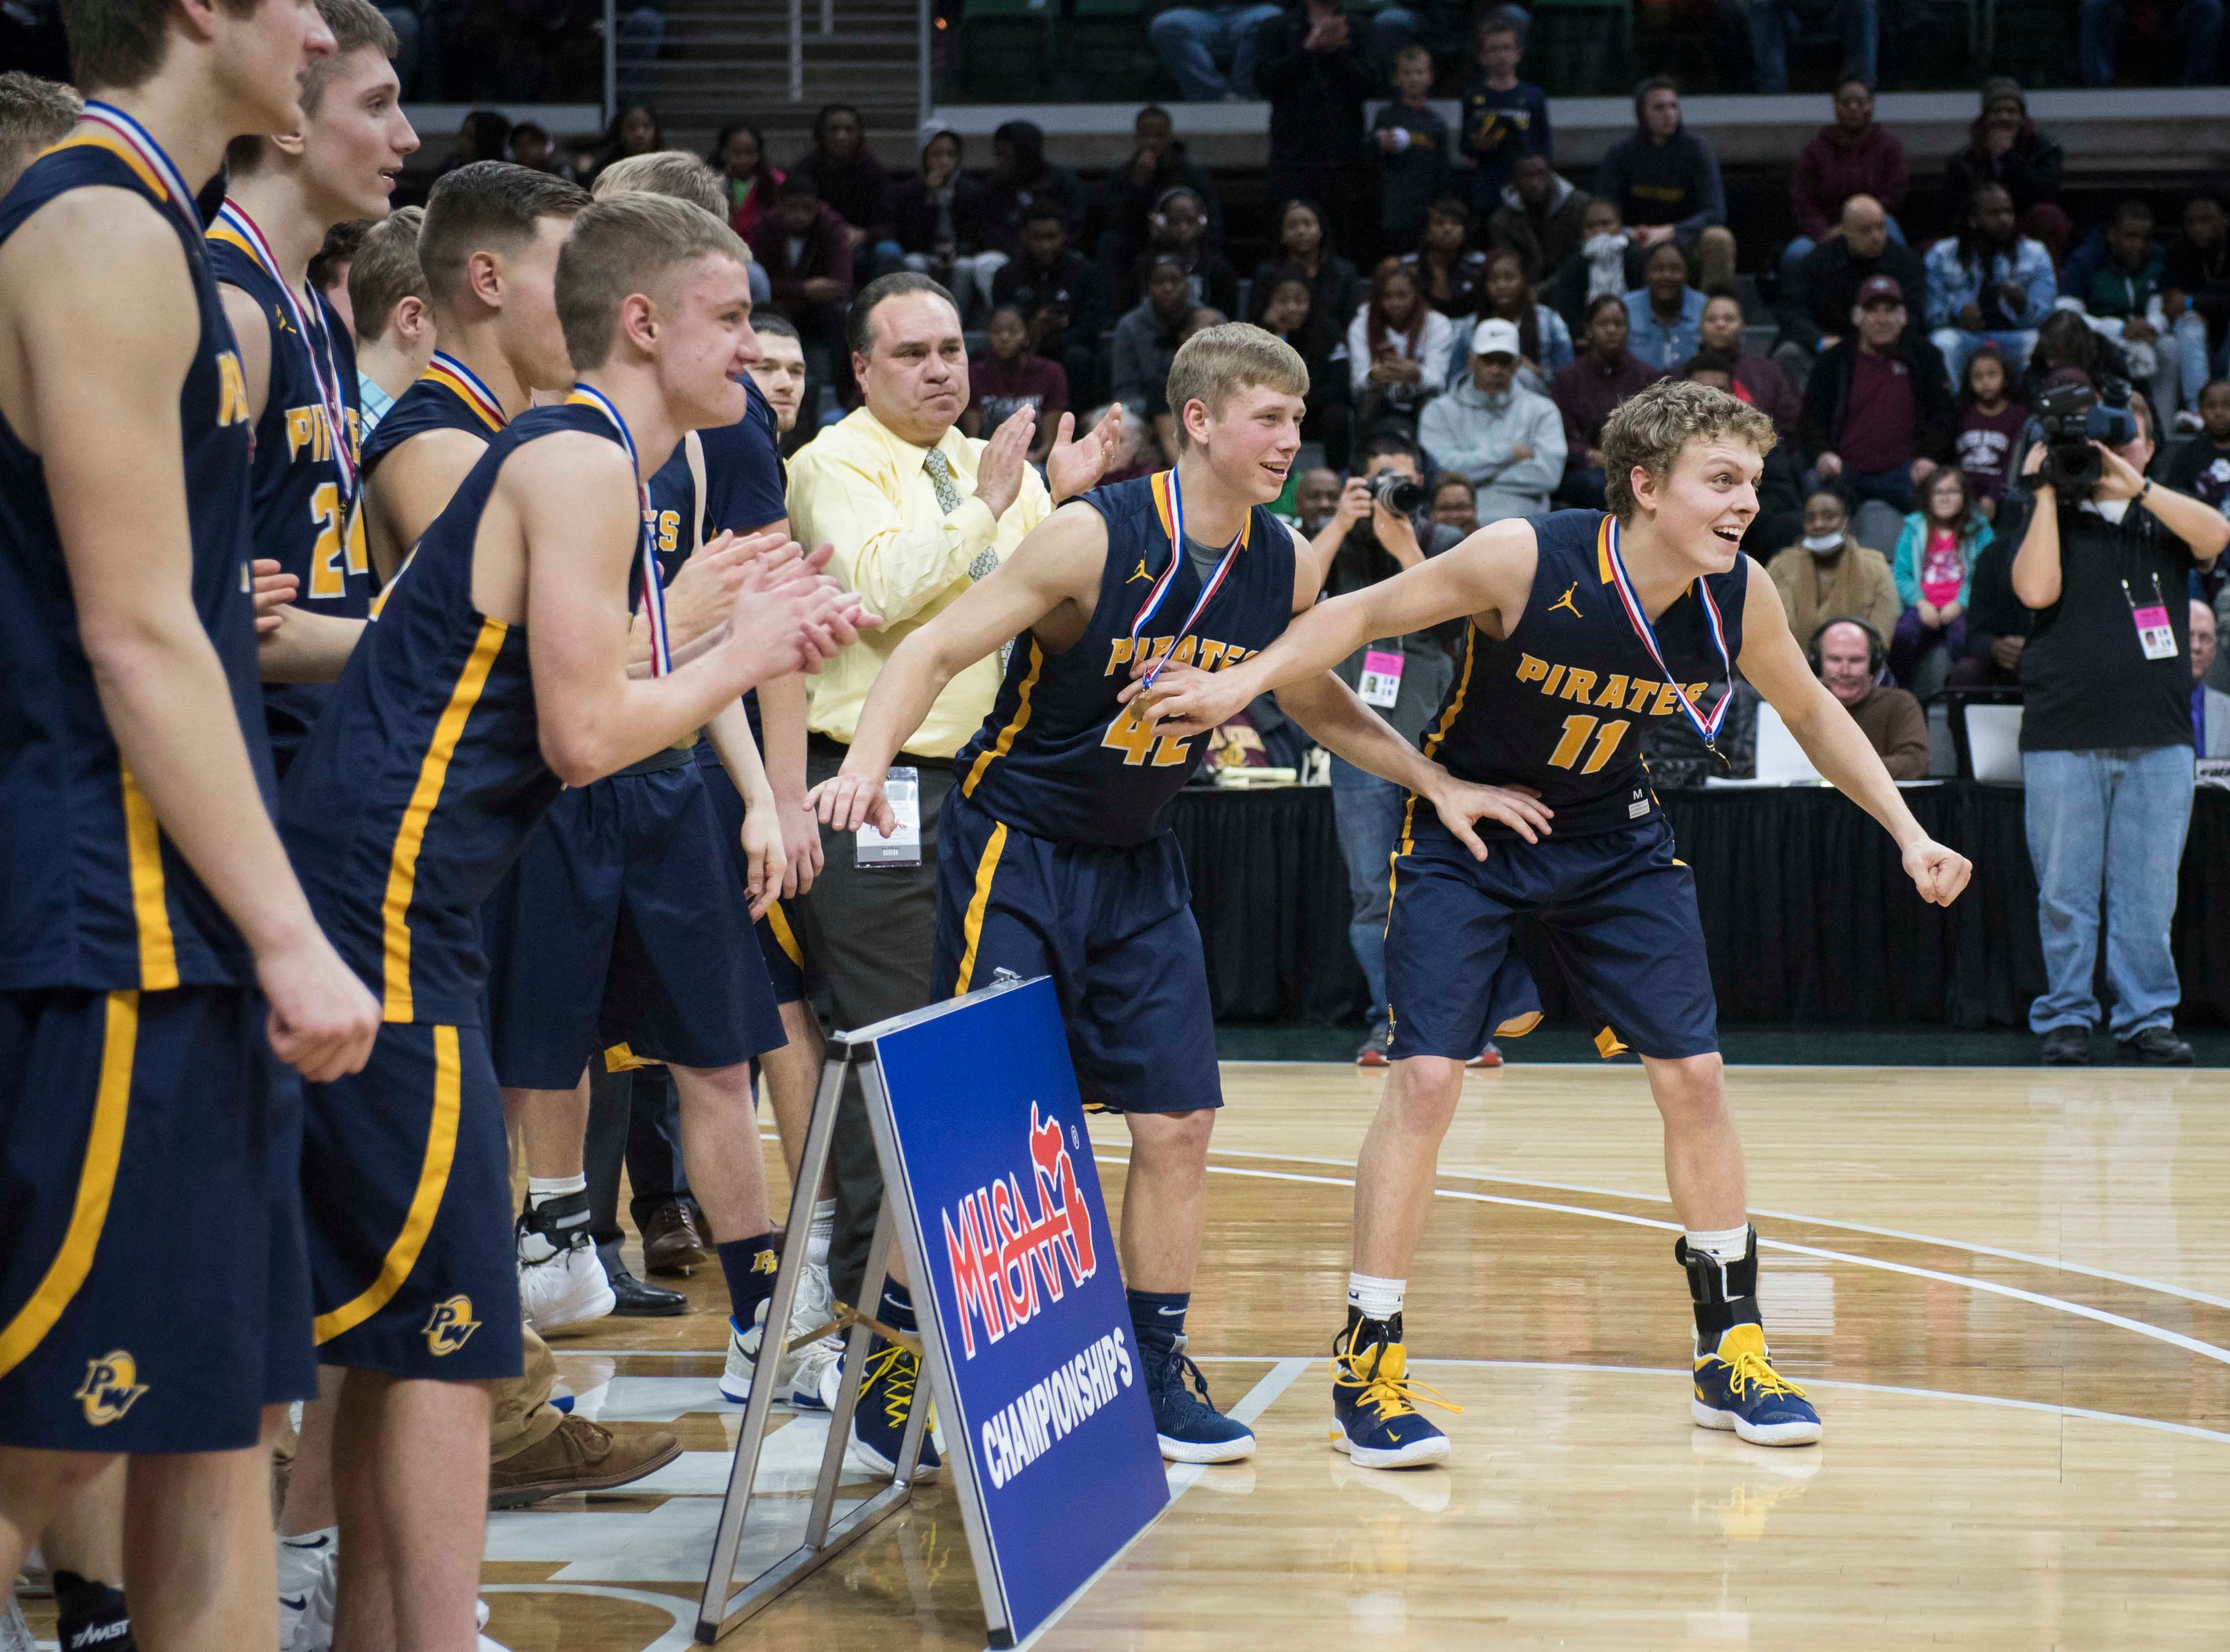 Pewamo-Westphalia players inch up before receiving the Division 3 championship trophy.